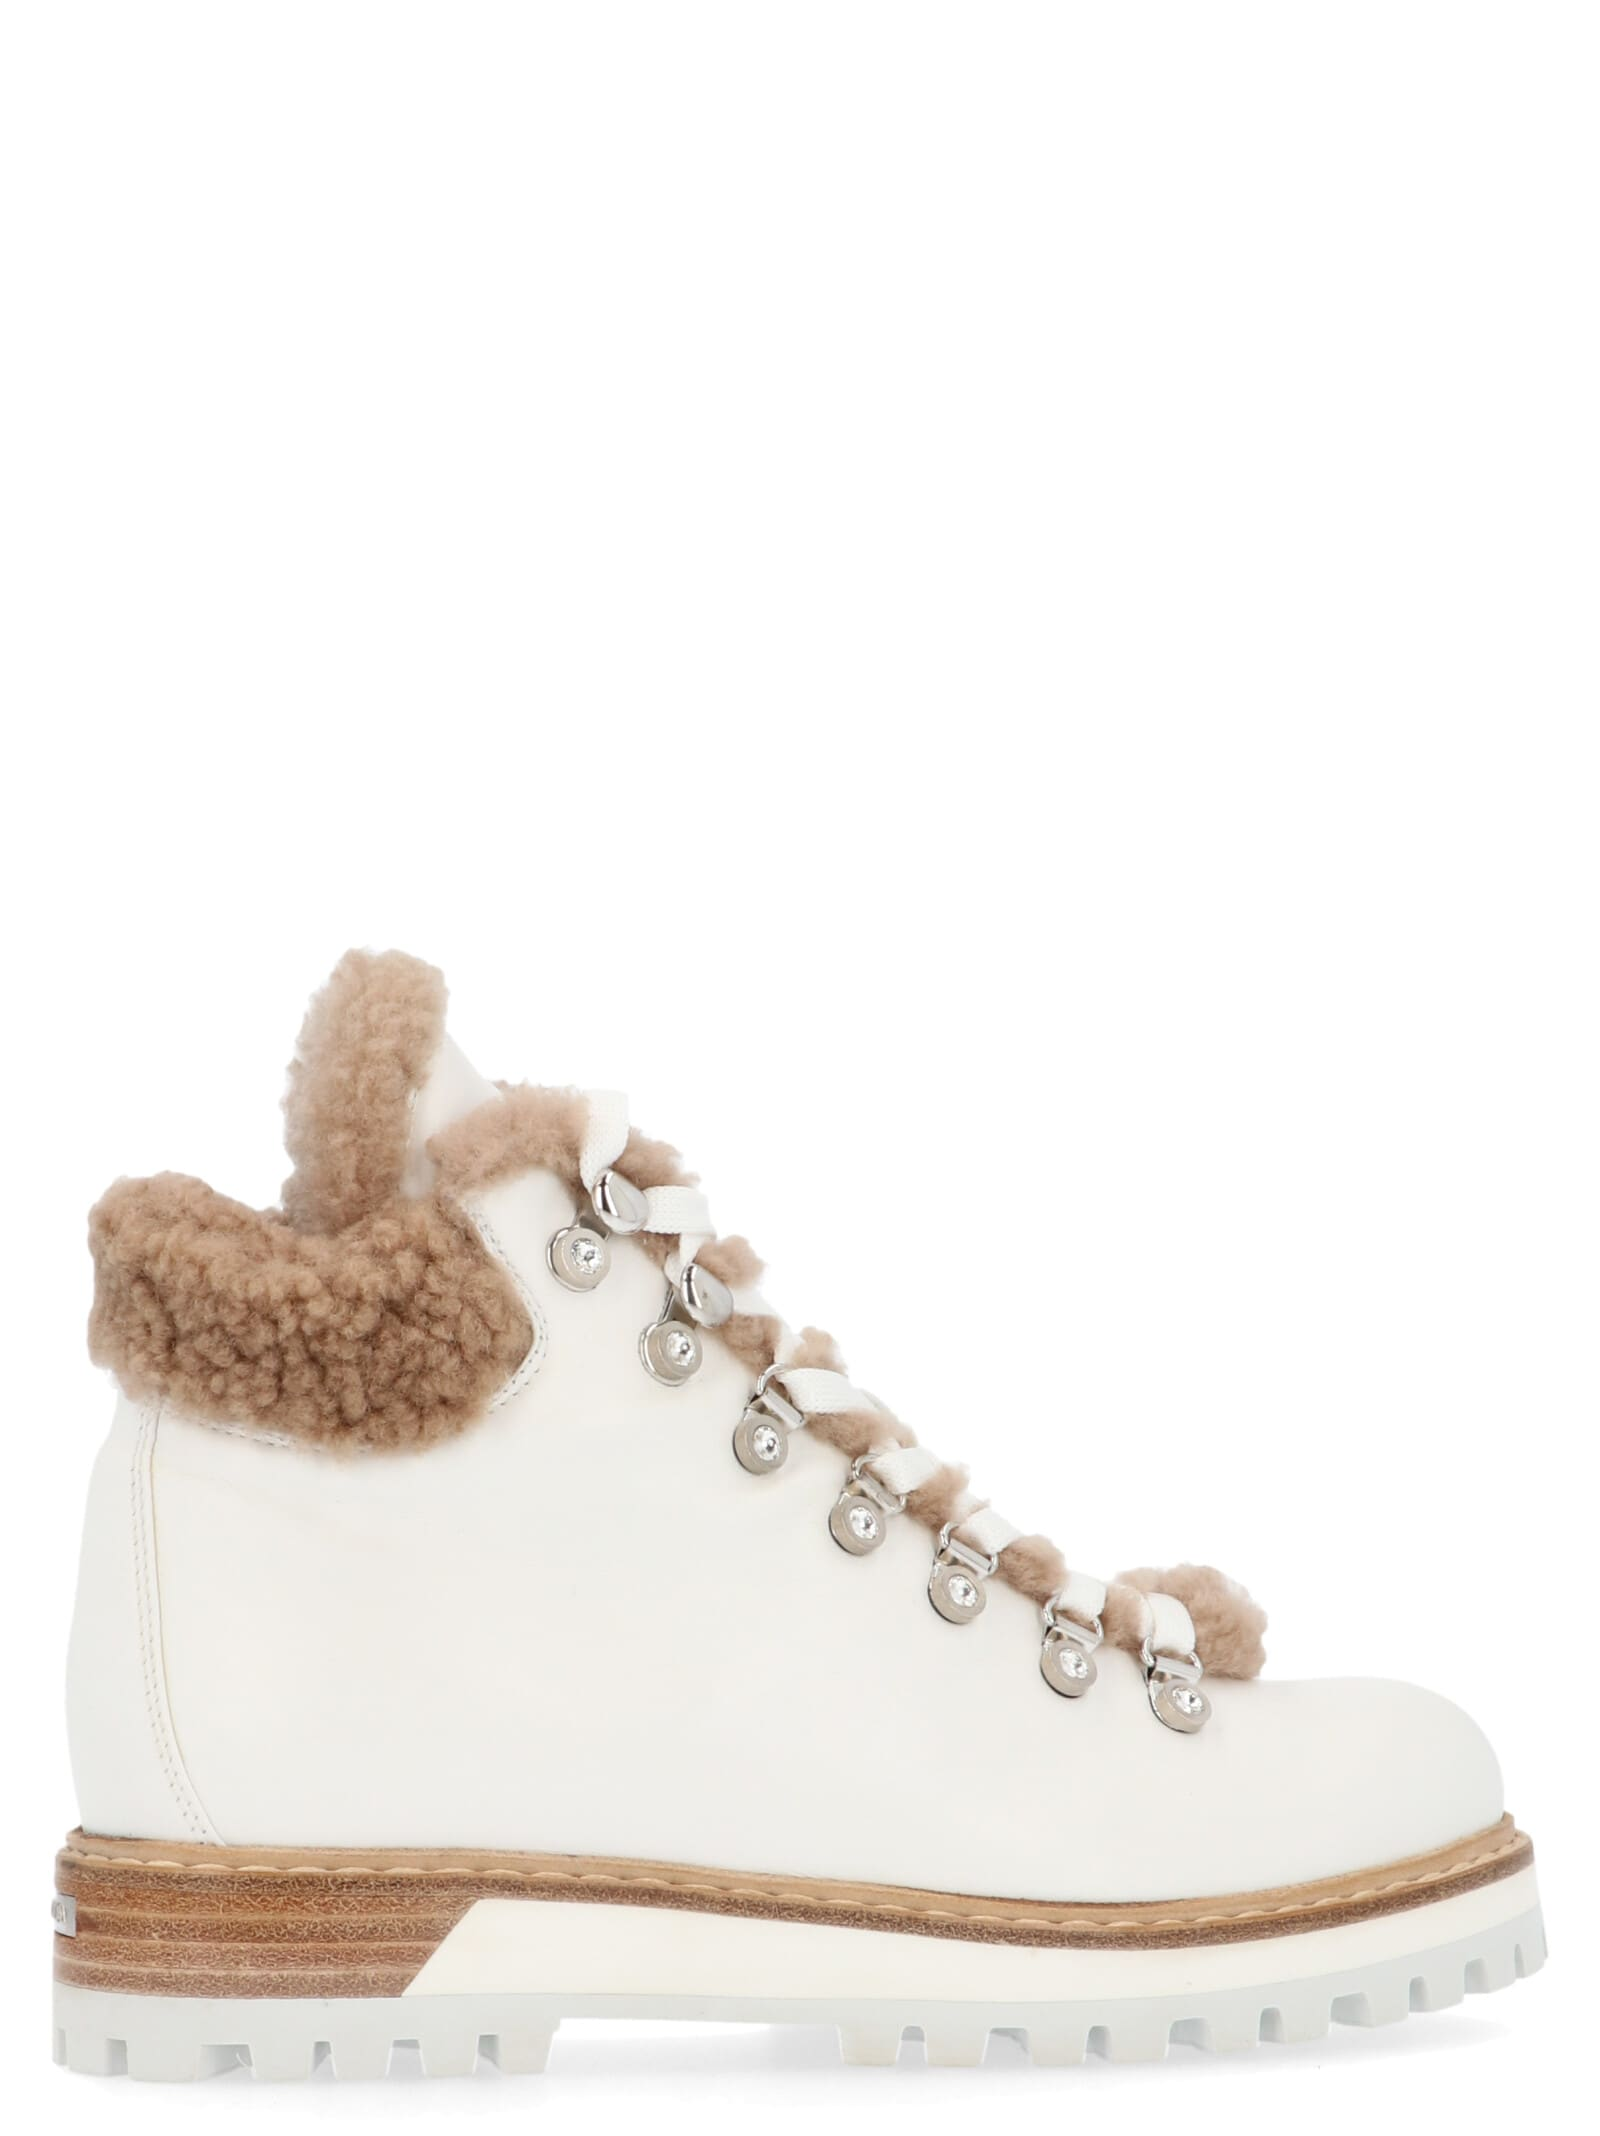 Le Silla St. Moritz Shoes In White